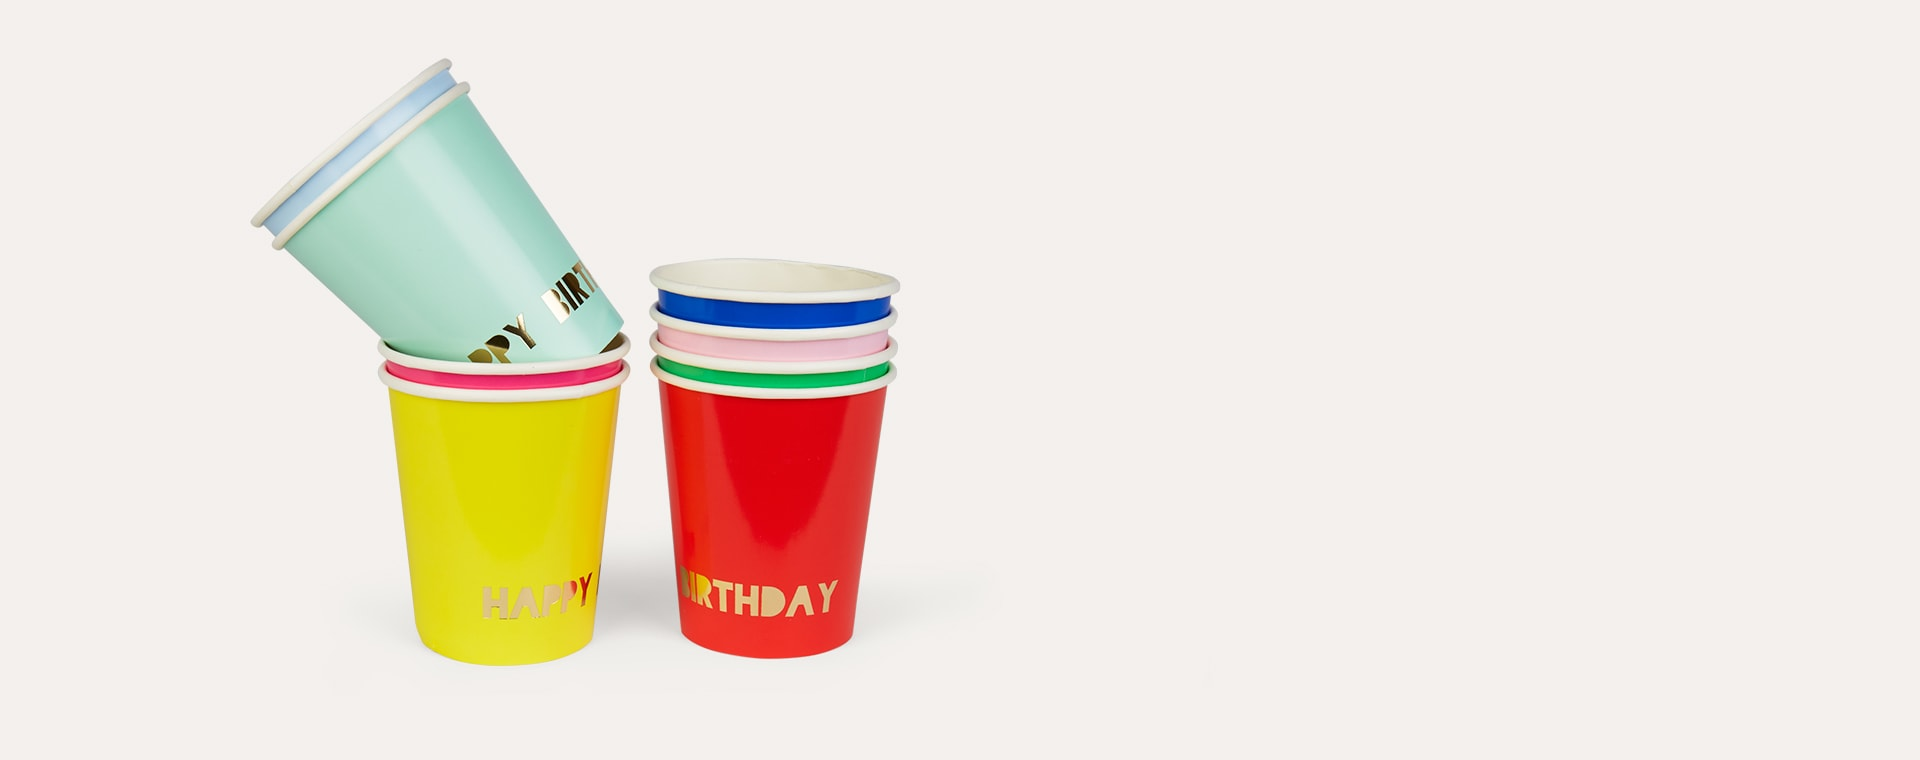 Multi Meri Meri Happy Birthday Paper Cups - 8 Pack